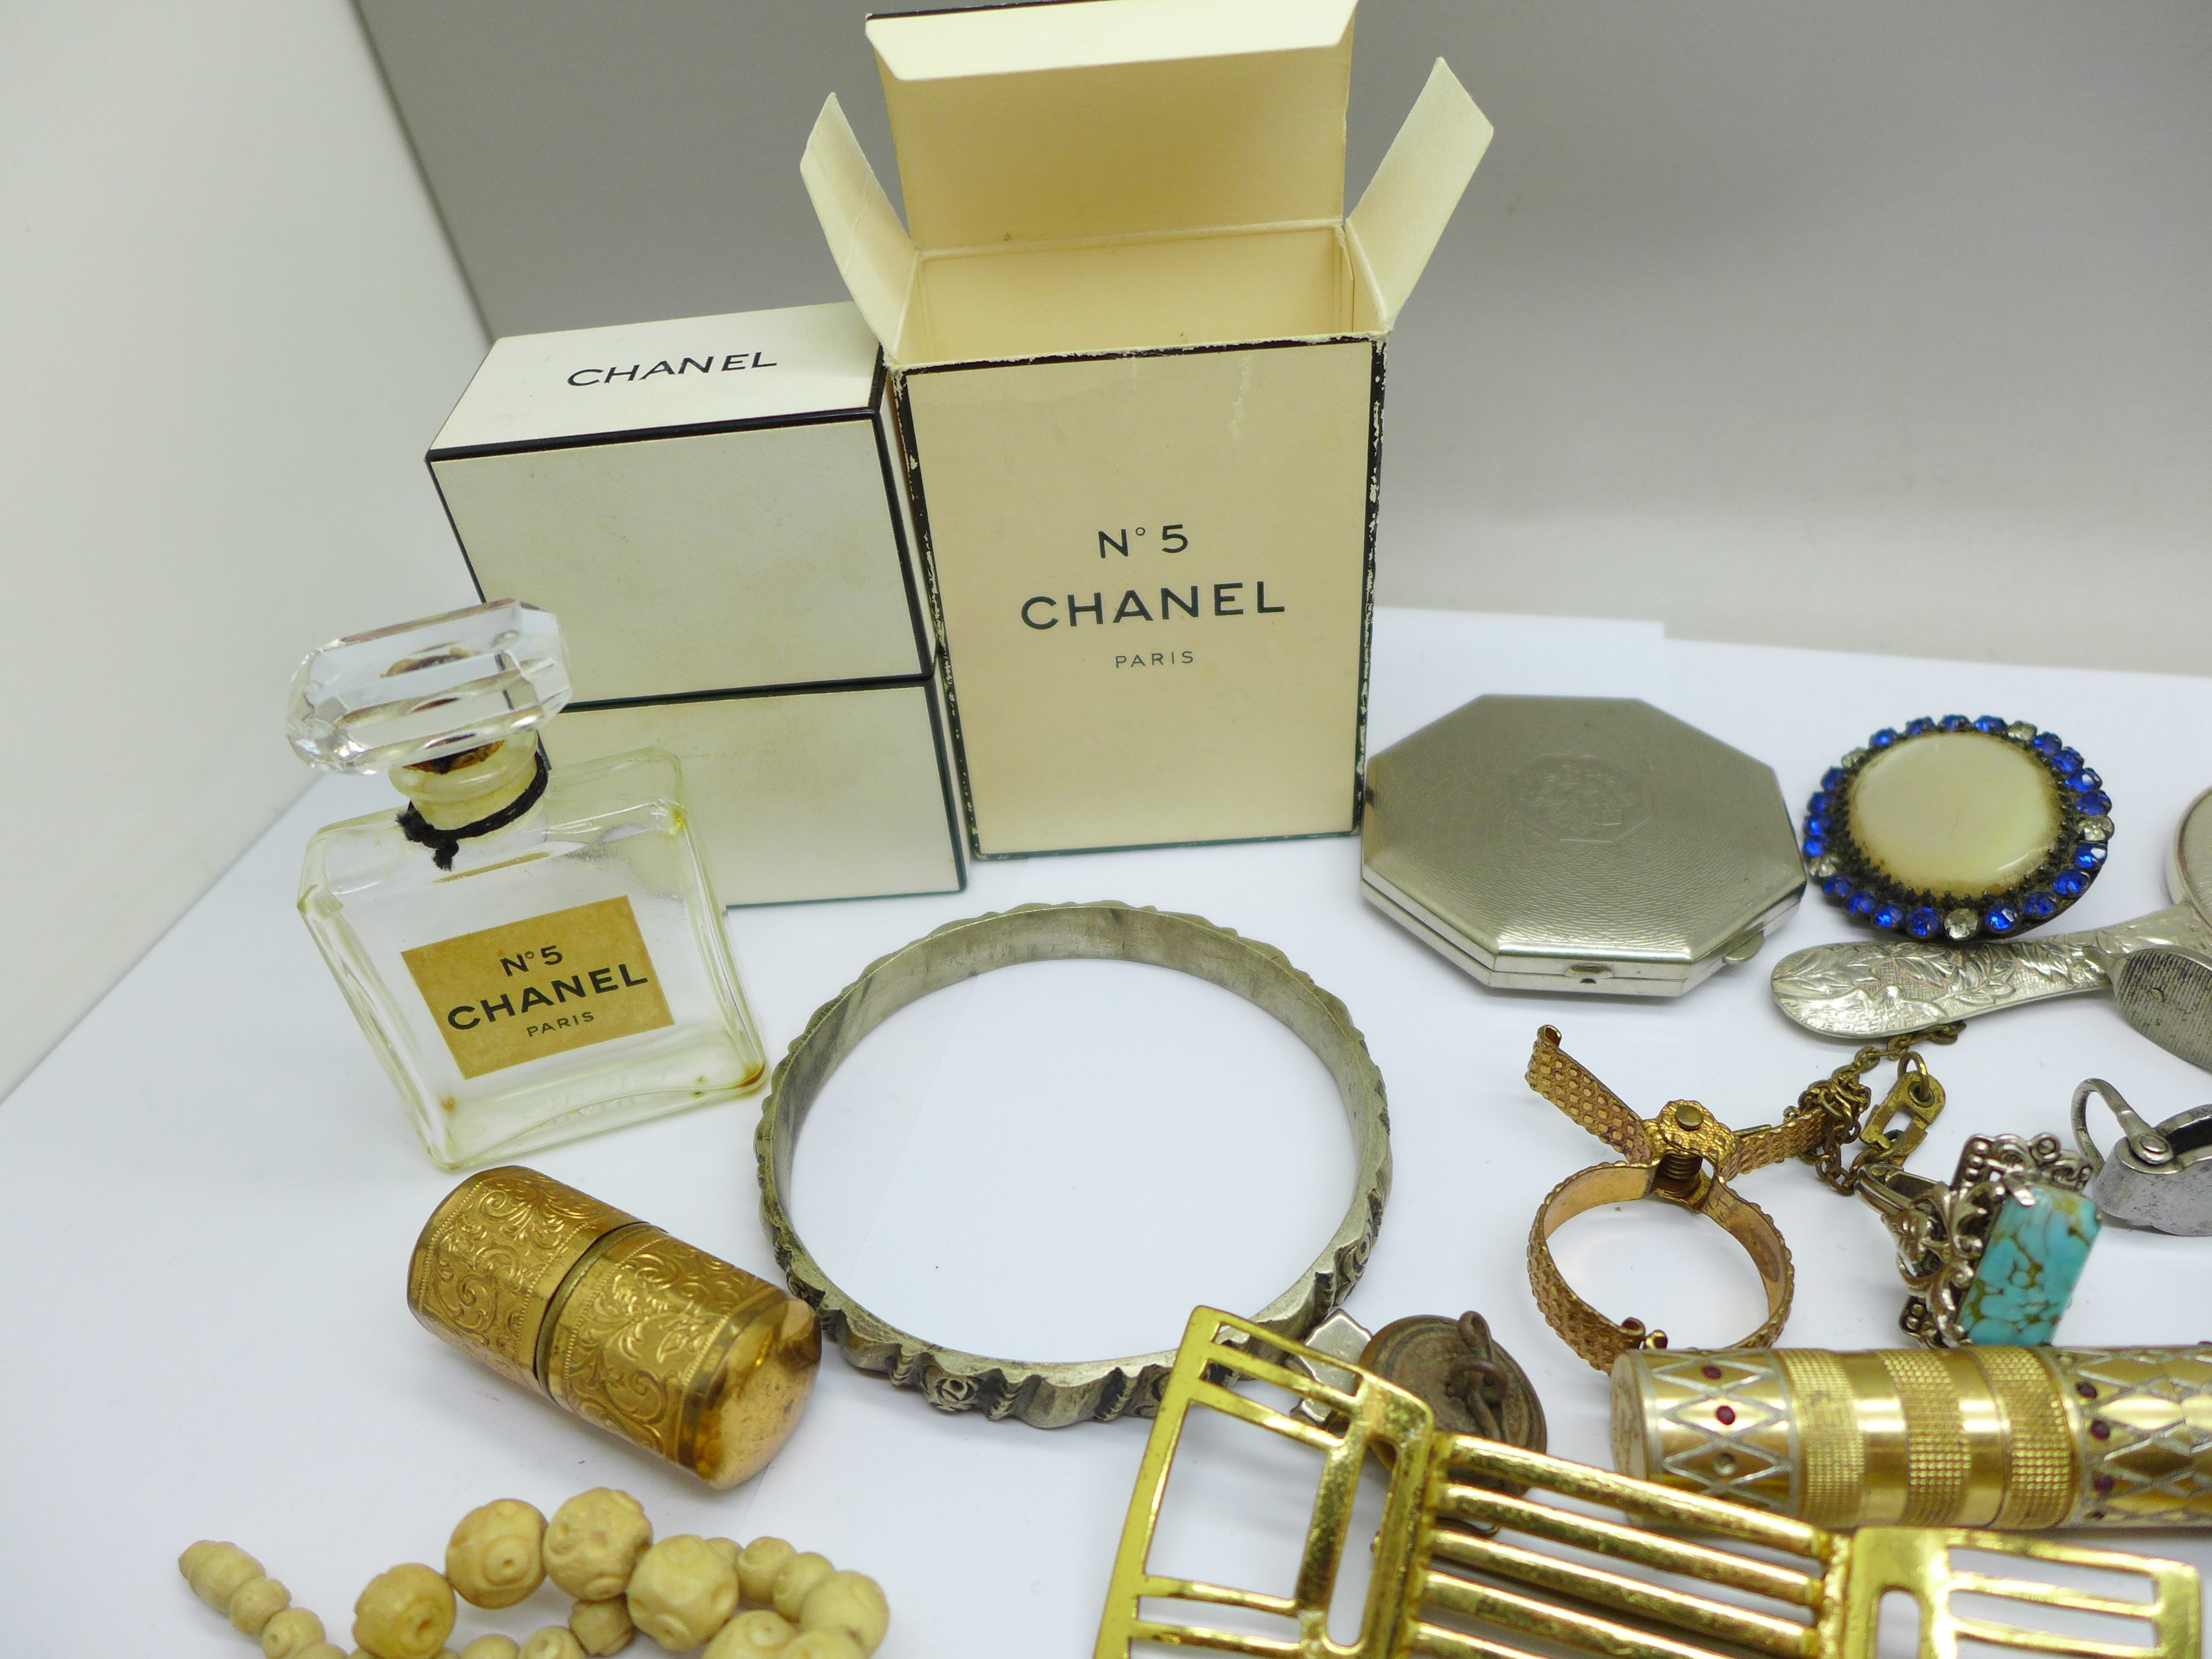 Vintage jewellery, a compact, a mirror, etc. - Image 2 of 4